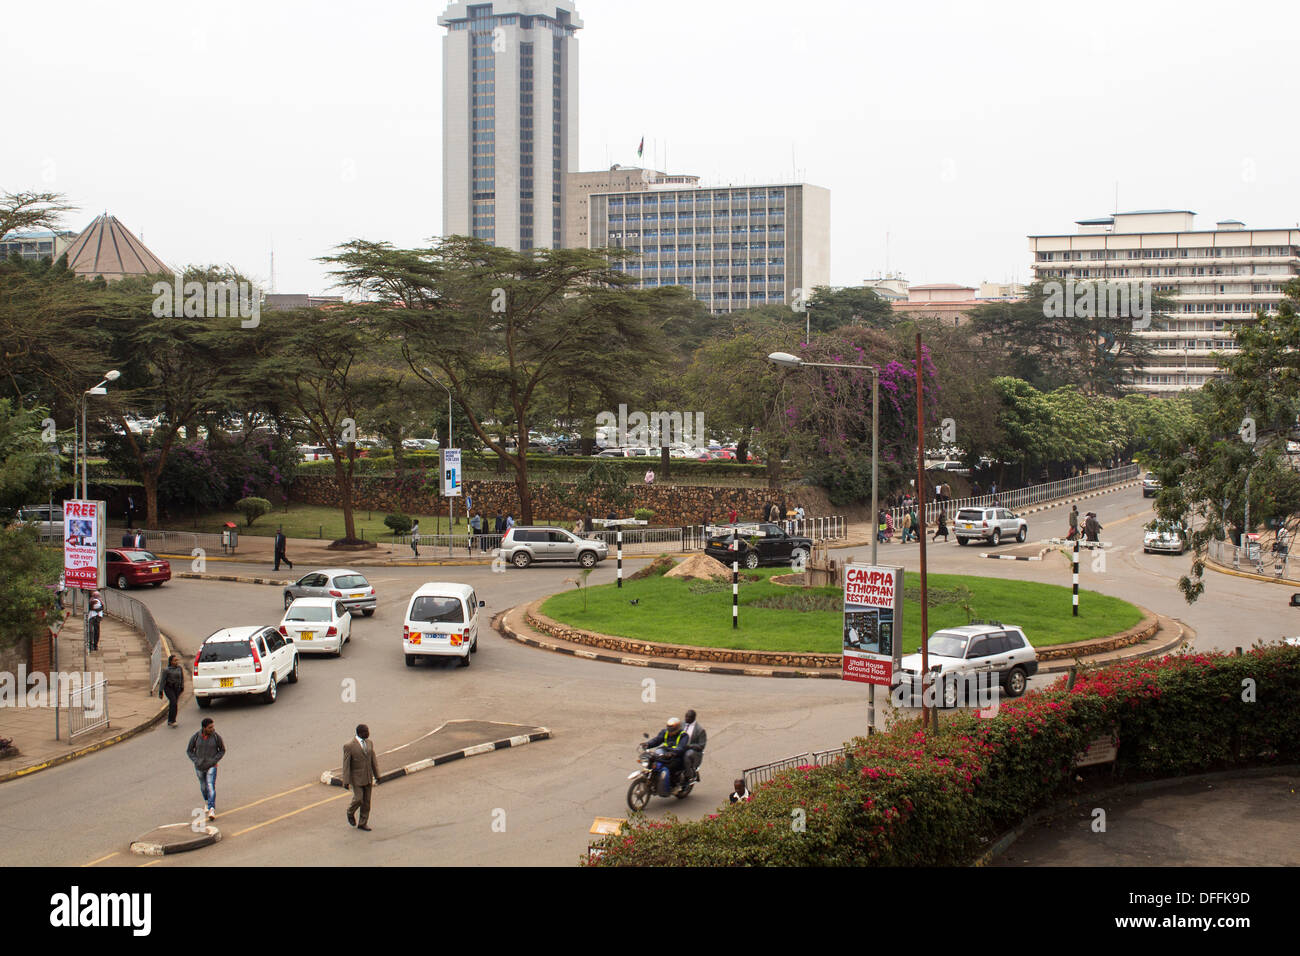 Traffic Circle at Parliament Rd. and City-Hall Way in Nairobi, Kenya - Stock Image